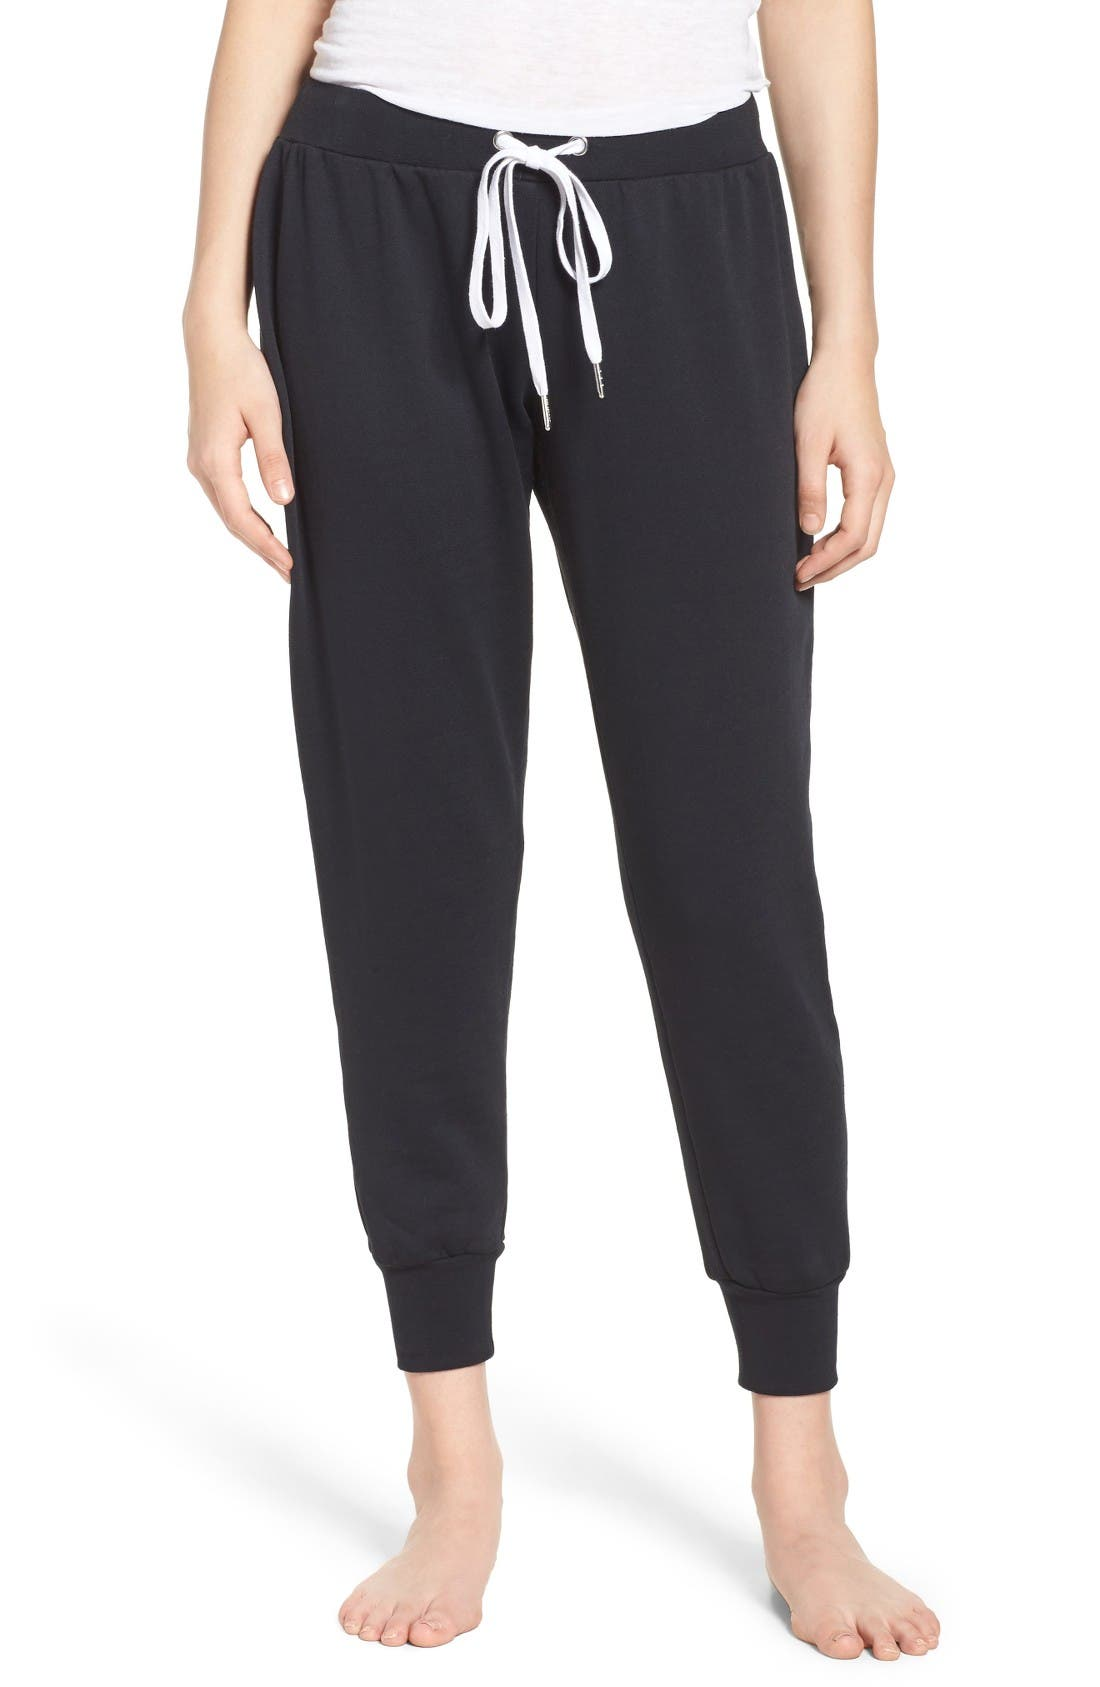 Alternate Image 1 Selected - The Laundry Room Cozy Crew Lounge Pants